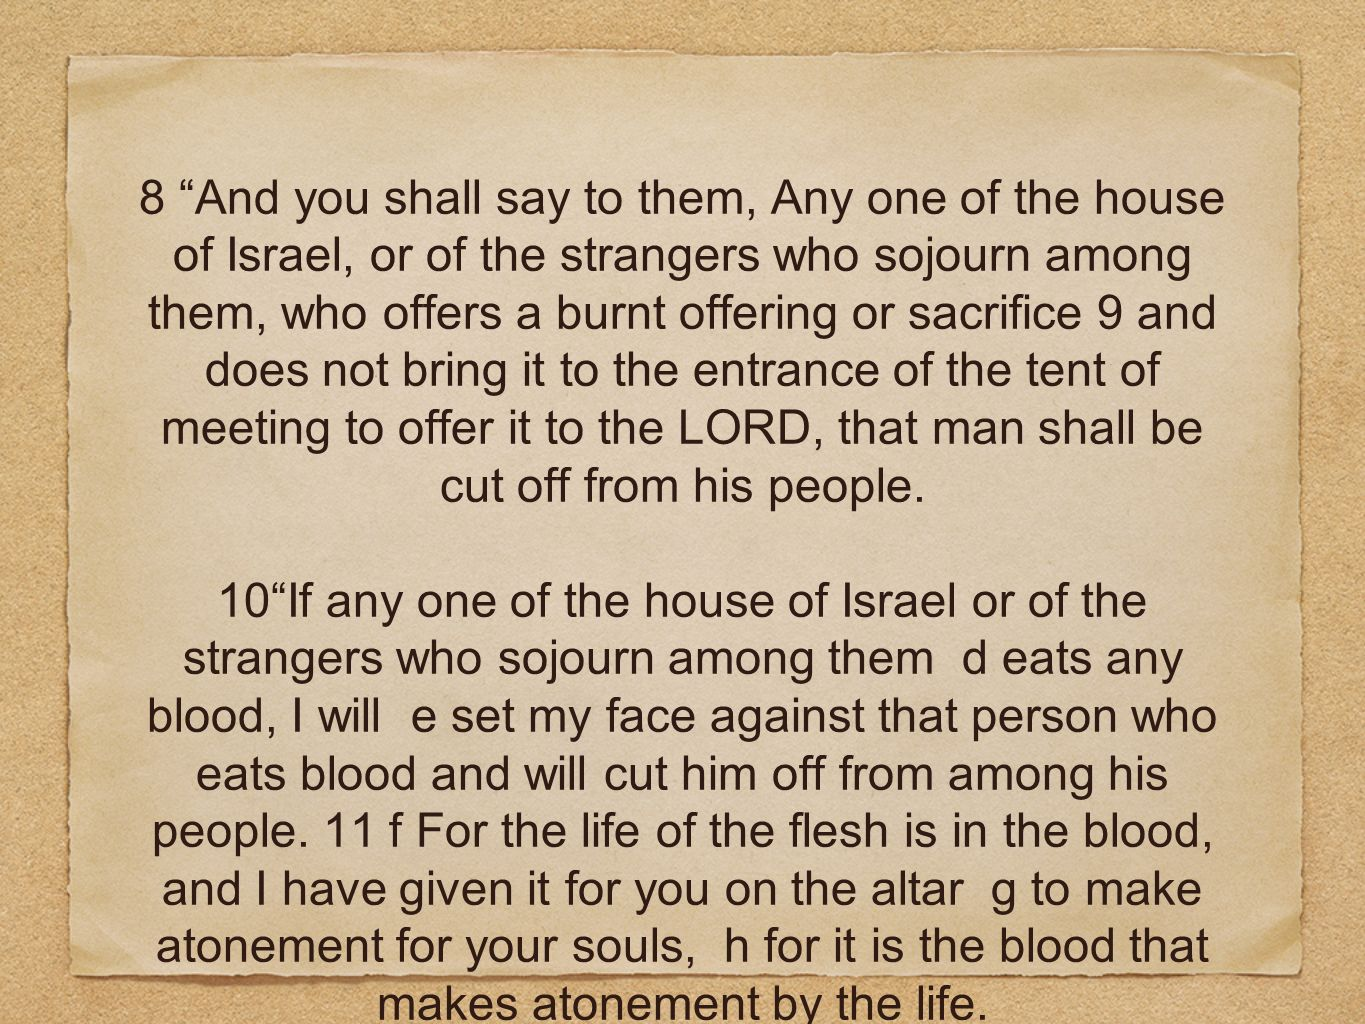 8 And you shall say to them, Any one of the house of Israel, or of the strangers who sojourn among them, who offers a burnt offering or sacrifice 9 and does not bring it to the entrance of the tent of meeting to offer it to the LORD, that man shall be cut off from his people.